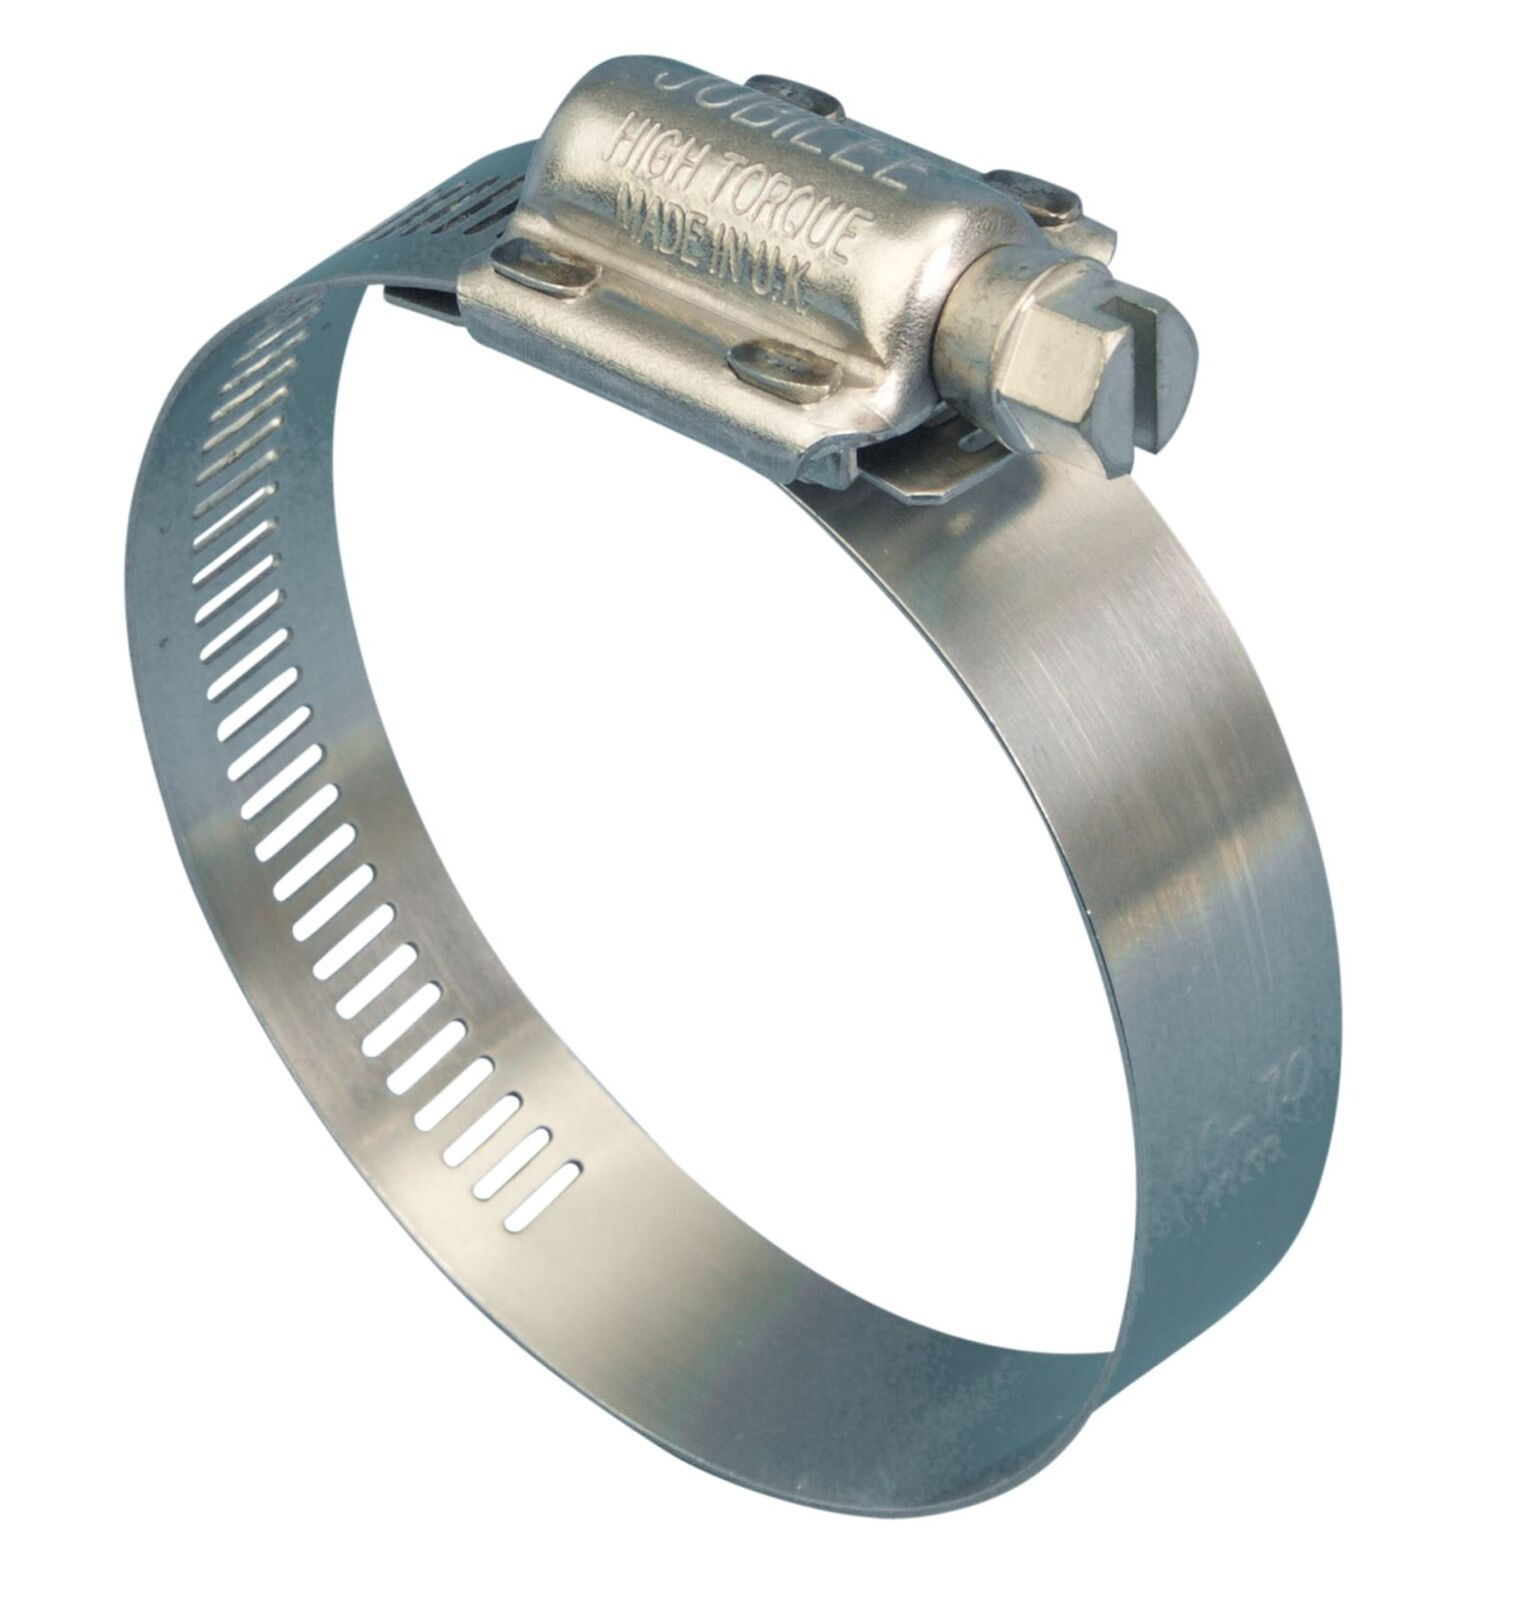 9MM BAND 70-90MM NORMA FULL STAINLESS HOSE CLAMP WORM DRIVE MADE IN GERMANY